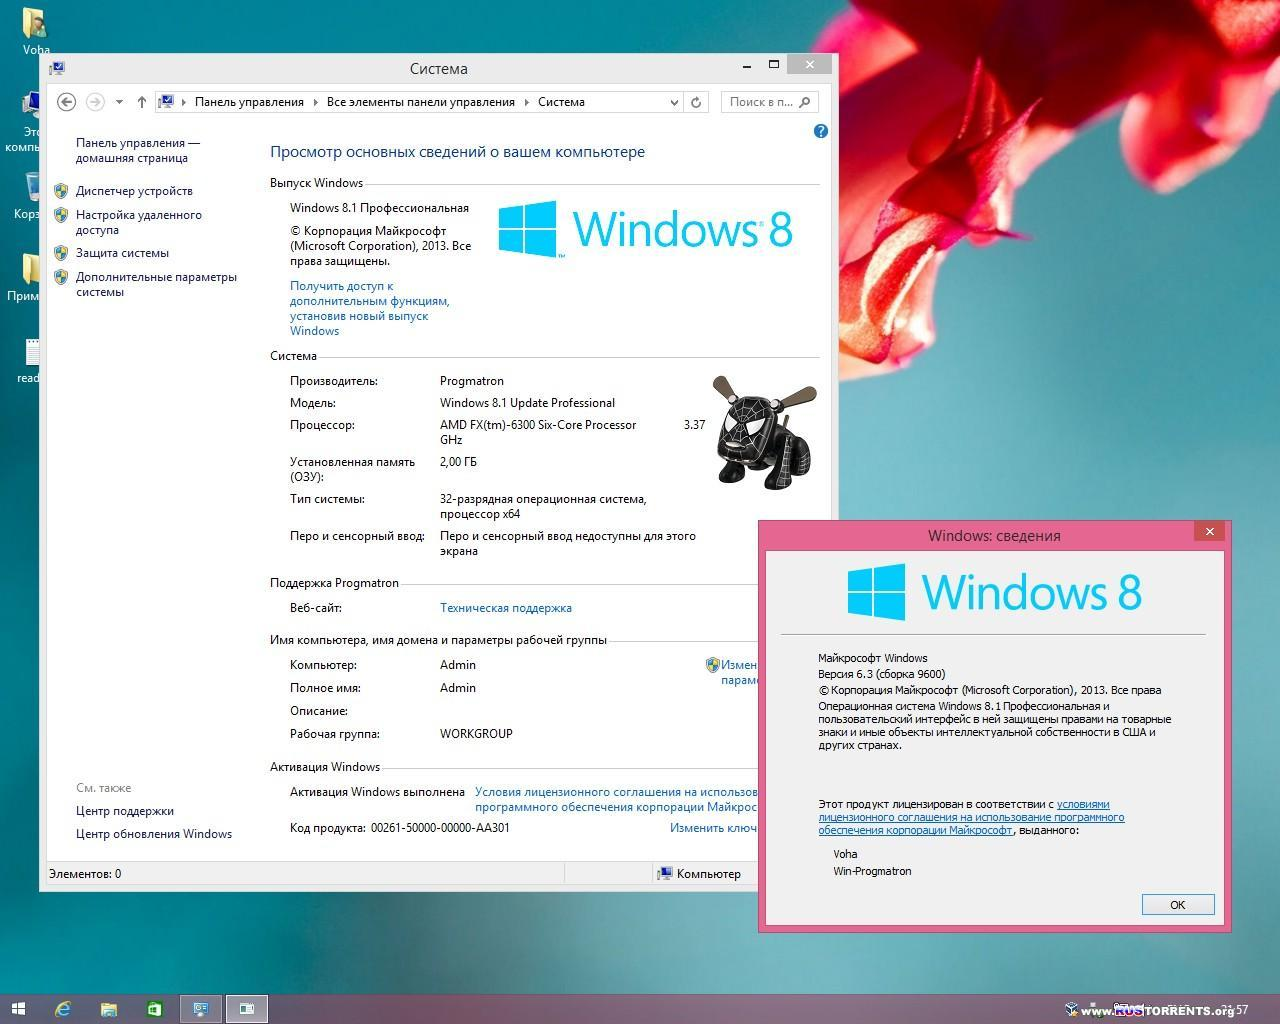 Windows 8.1 Update1 Core/Pro/Enterprise x86/x64 6.3 9600.17031 MSDN by Progmatron 22.04.2014 RUS